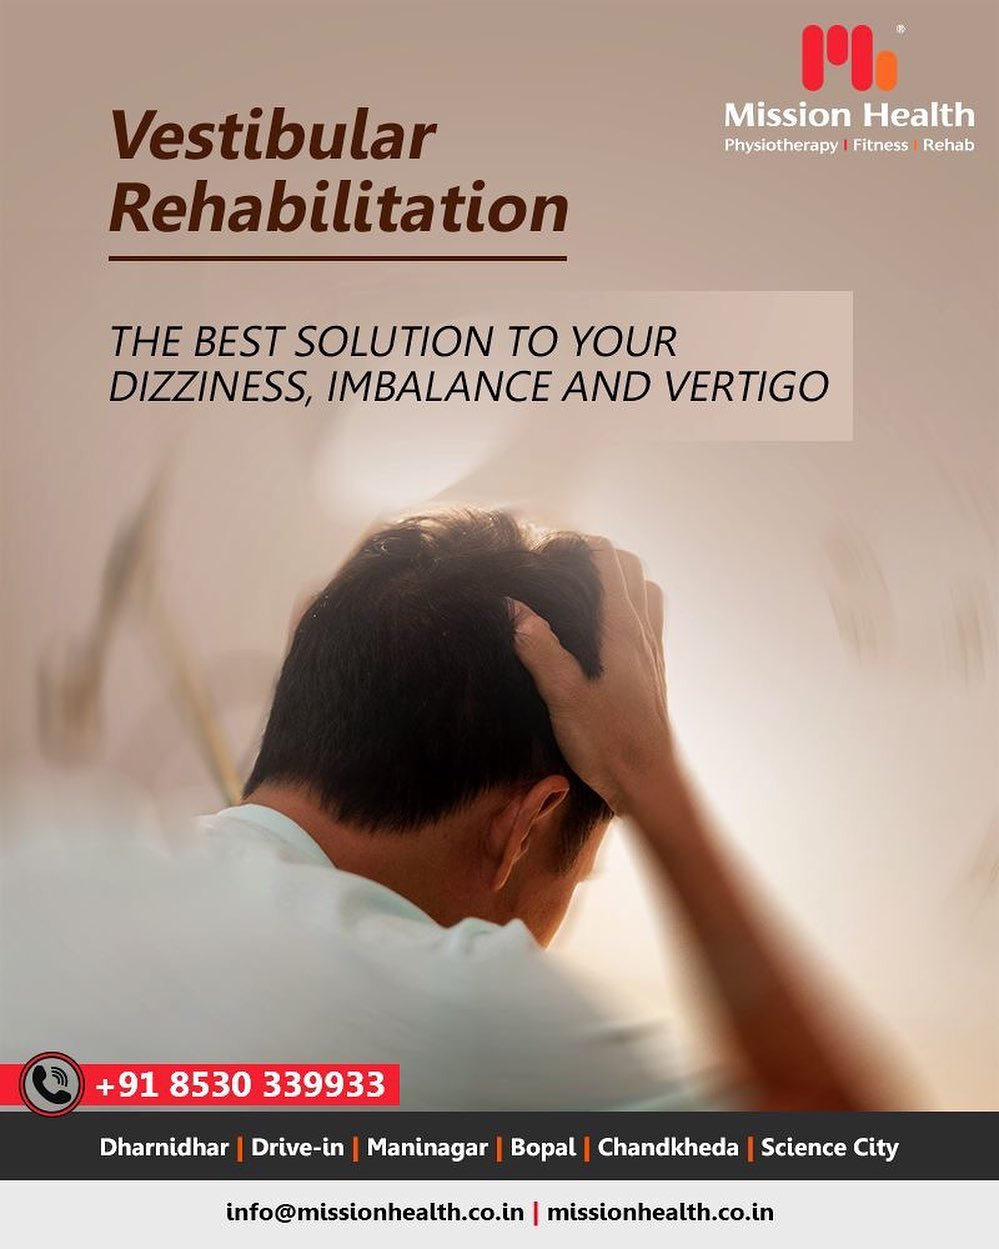 Do you frequently experience dizziness or light headedness?  Does your headache frequently?  Do you get dizzy or nauseate while driving a car?  If yes, join Vestibular Rehabilitation Therapy.  #VestibularRehabilitationTherapy #MissionHealth #MissionHealthIndia #MovementIsLife